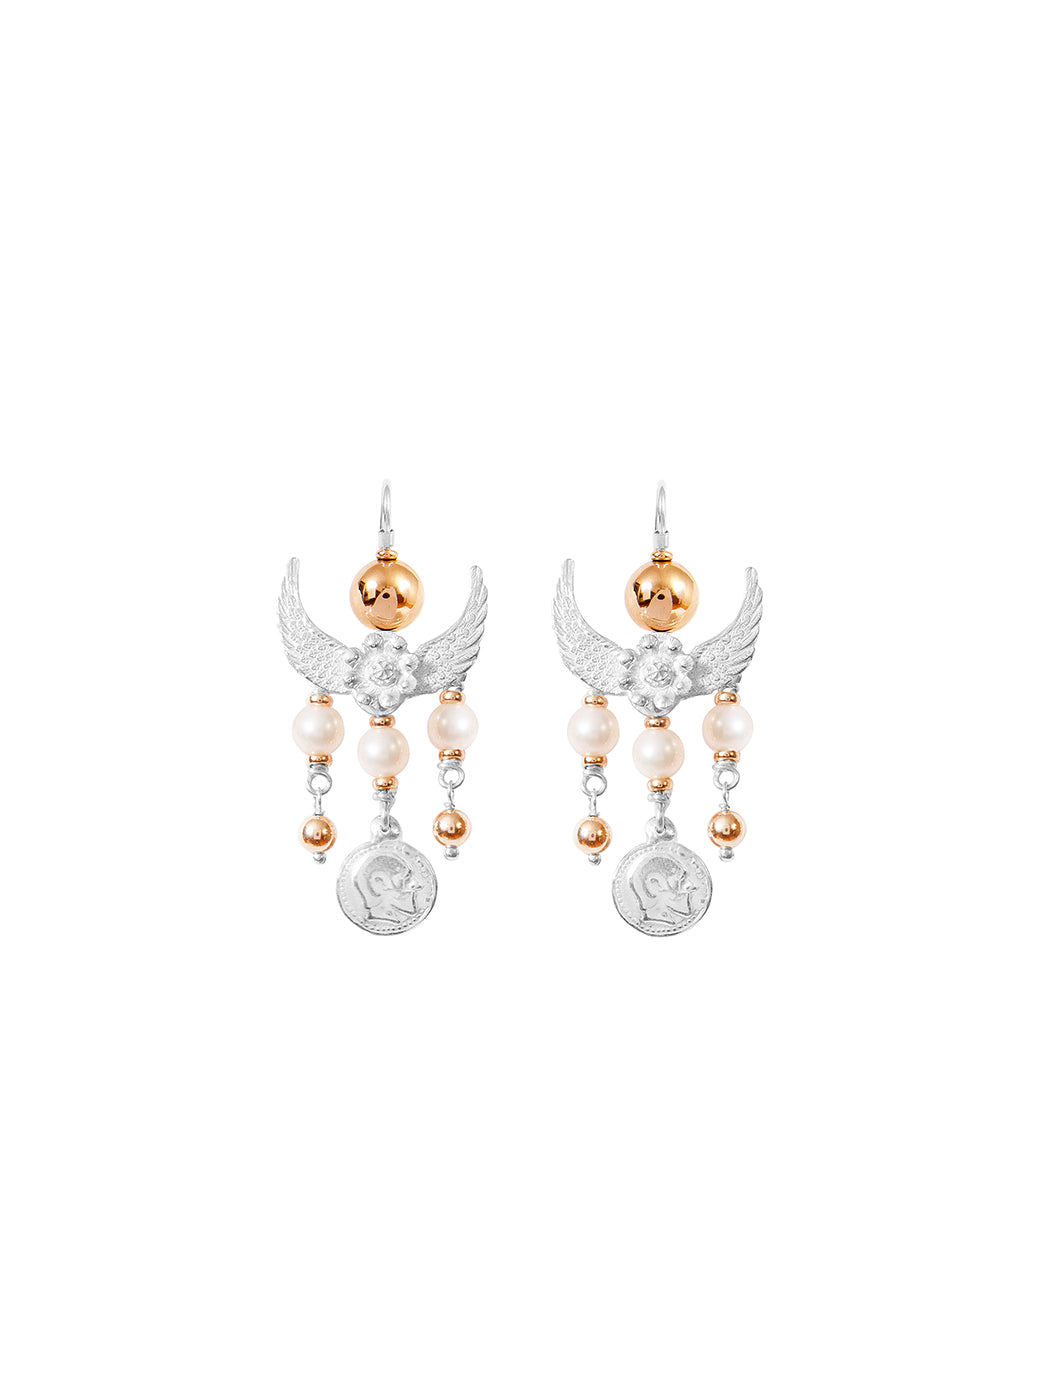 Fiorina Jewellery Gypset Earrings White Pearl